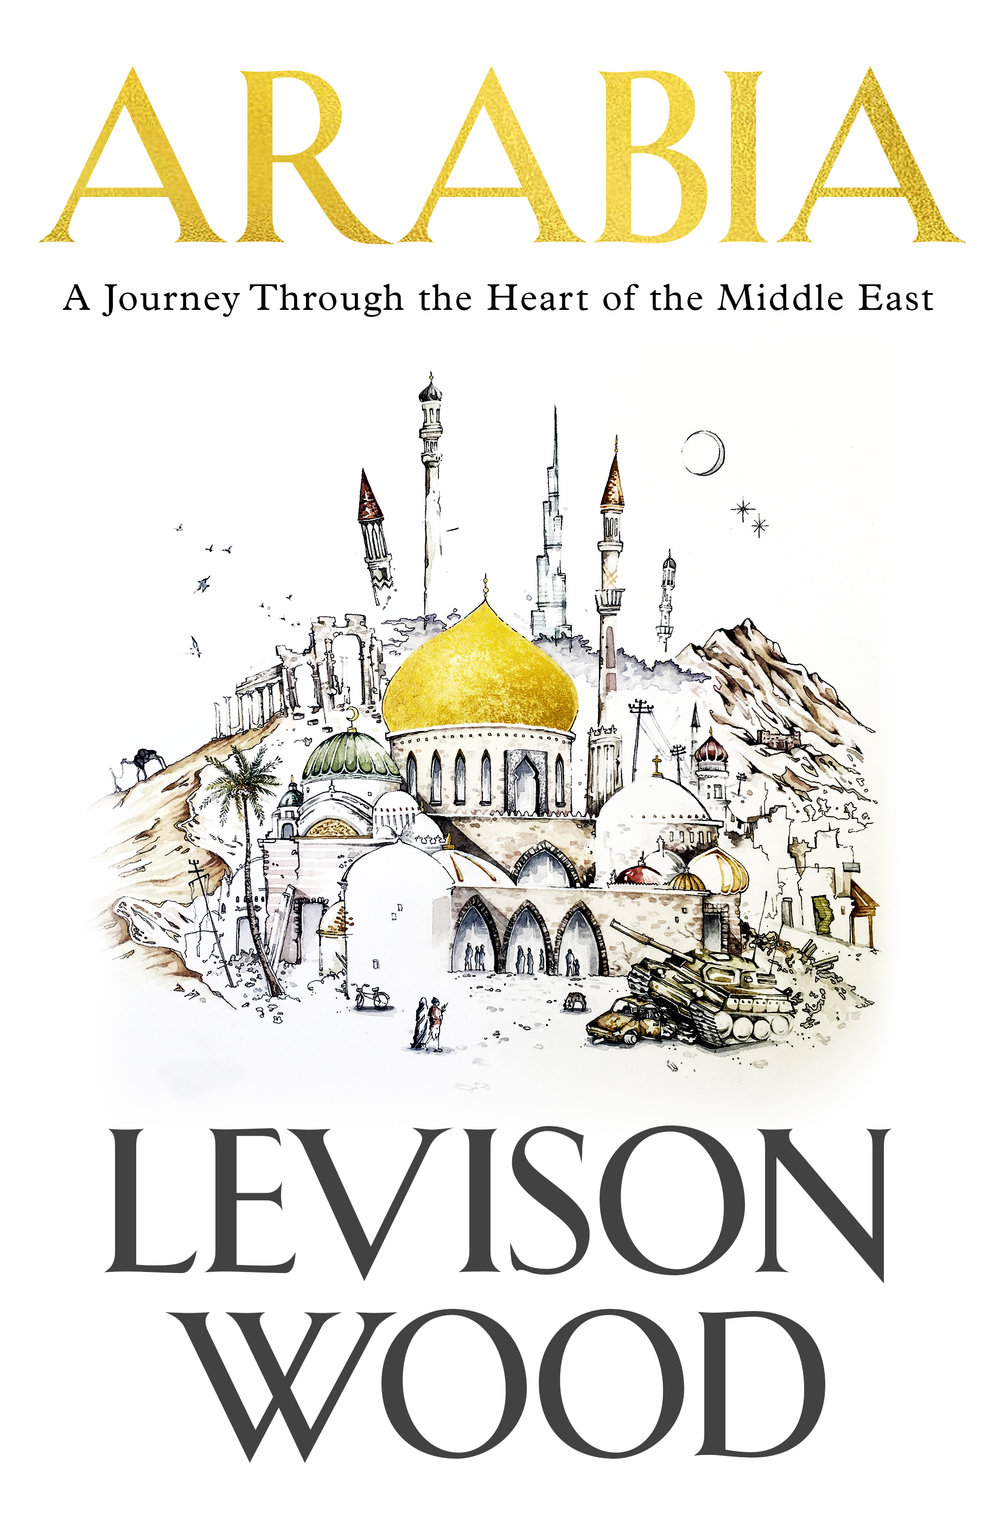 Lev's latest book 'Arabia: A Journey Through The Heart of the Middle East' was published on November 1st 2018 and is available to purchase  here .